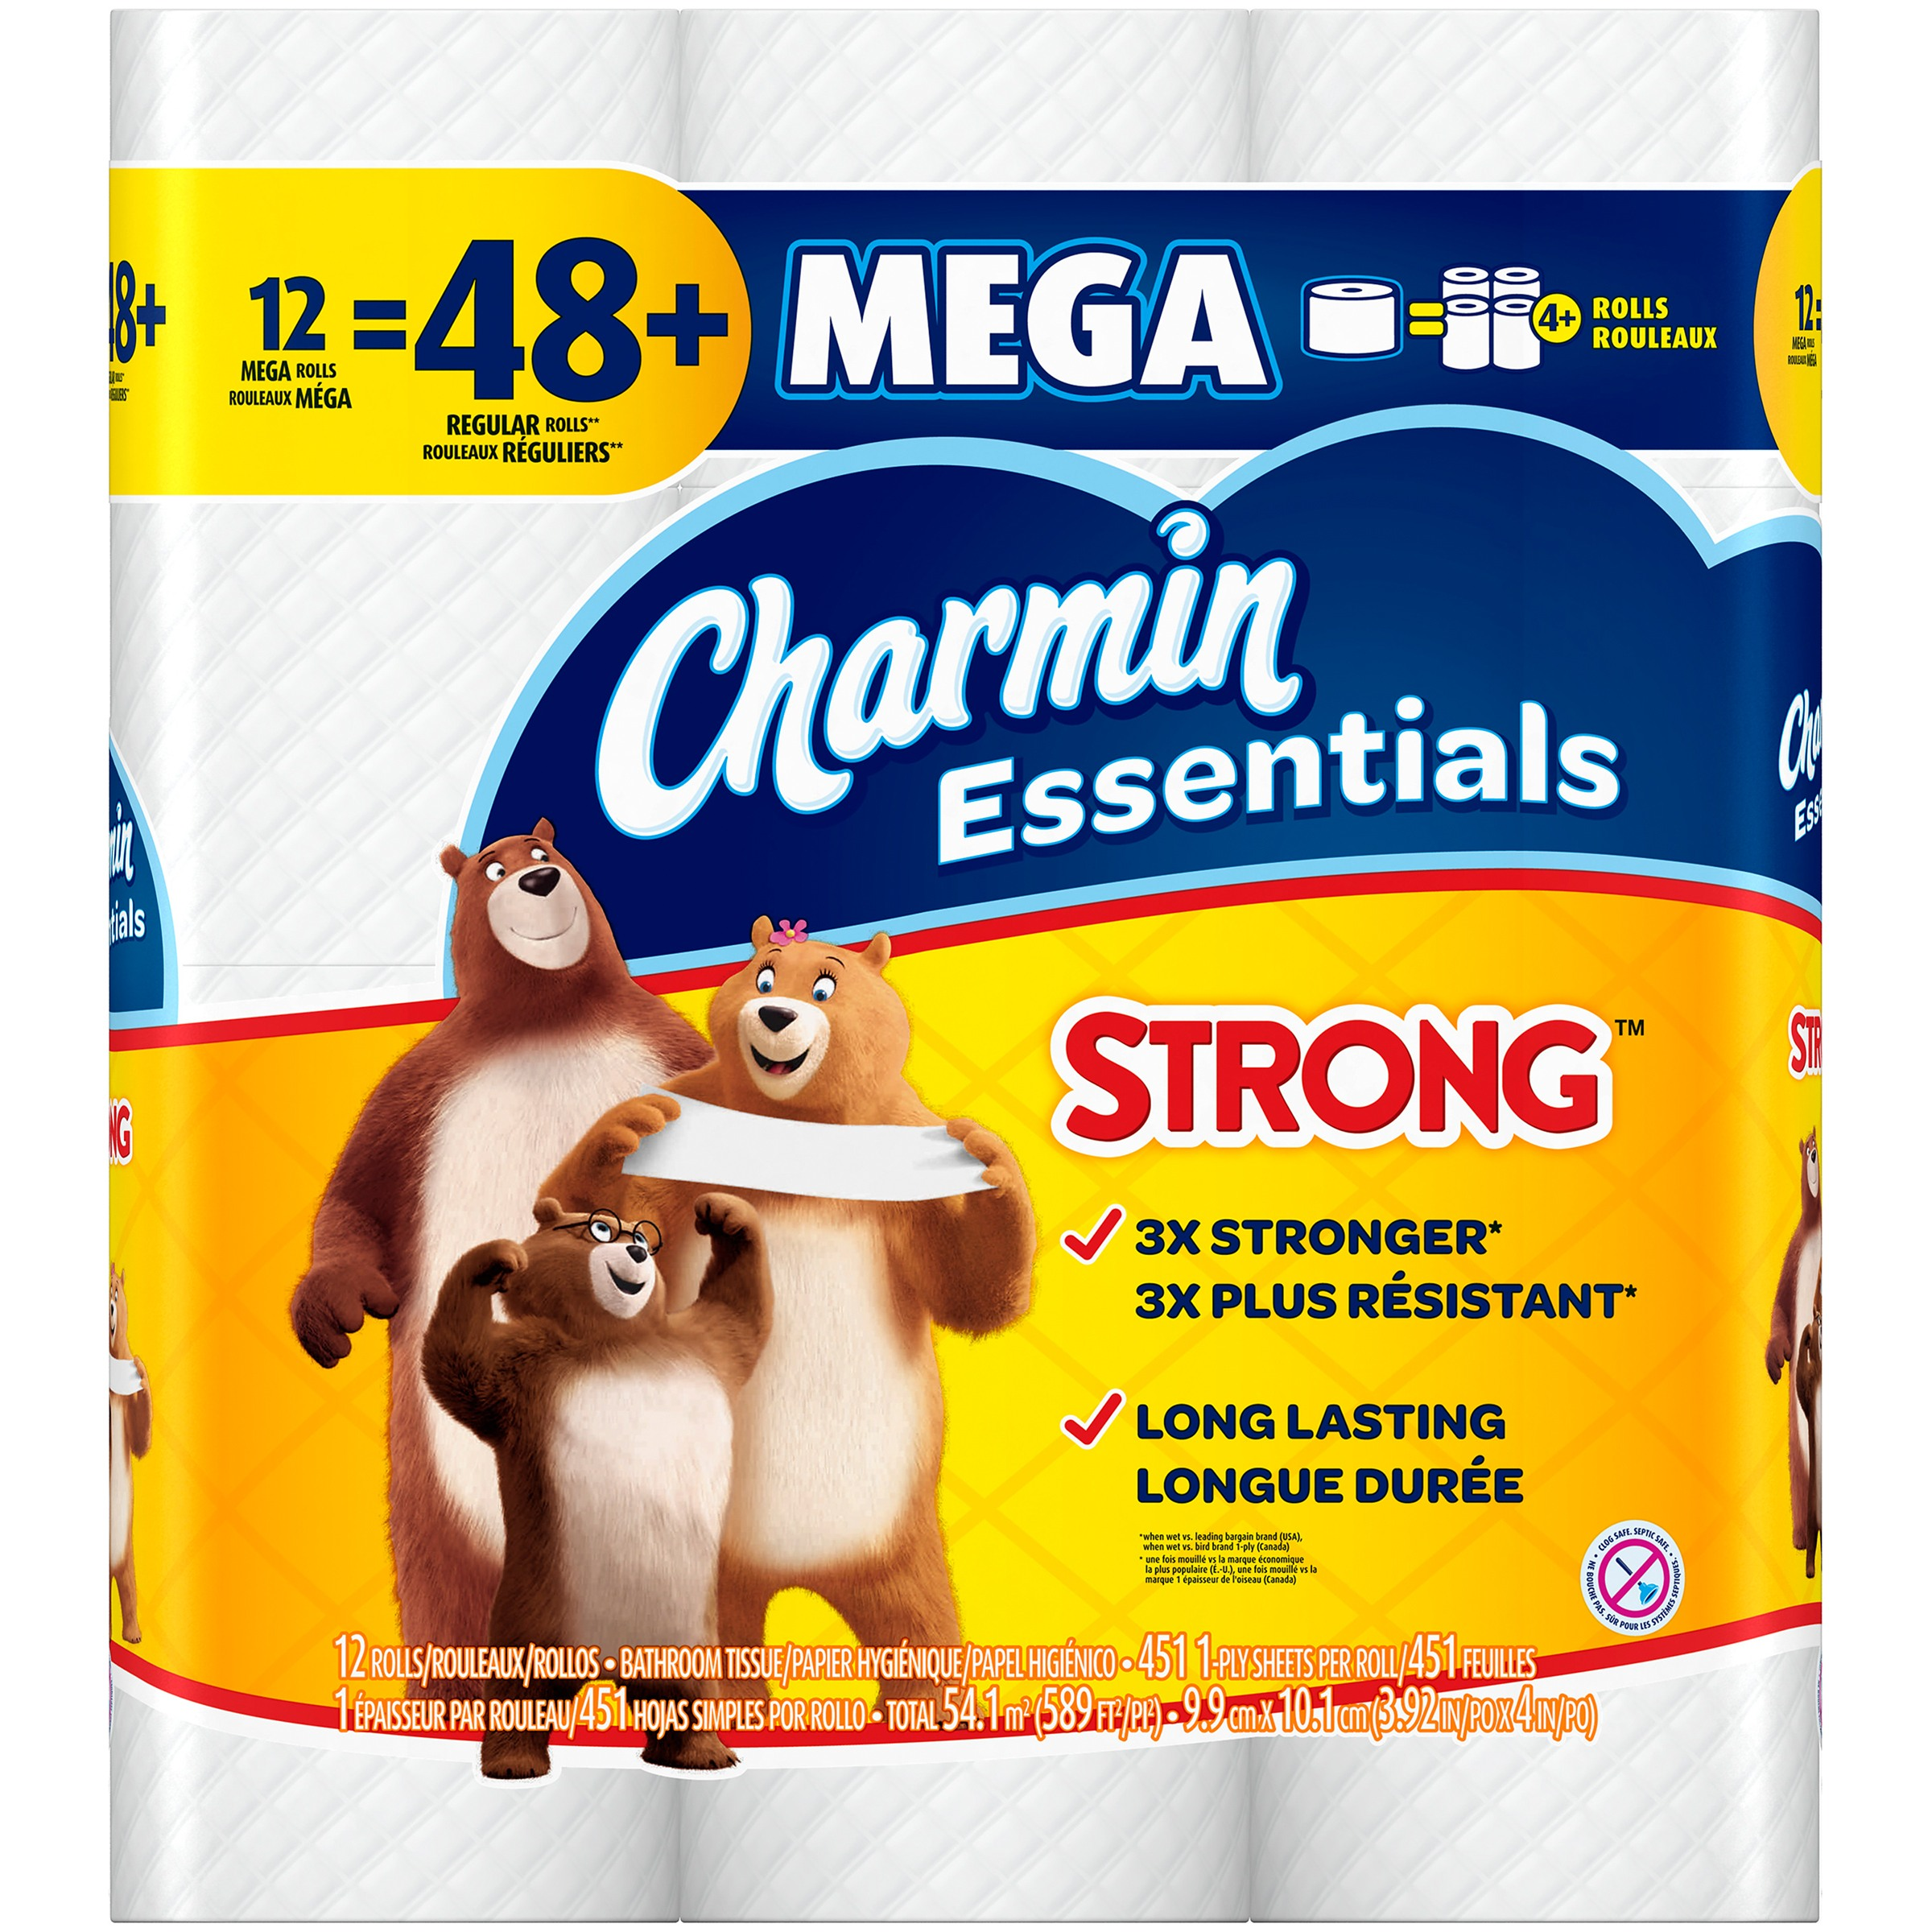 Charmin Essentials Toilet Paper, Strong, 12 Mega Rolls by Procter & Gamble